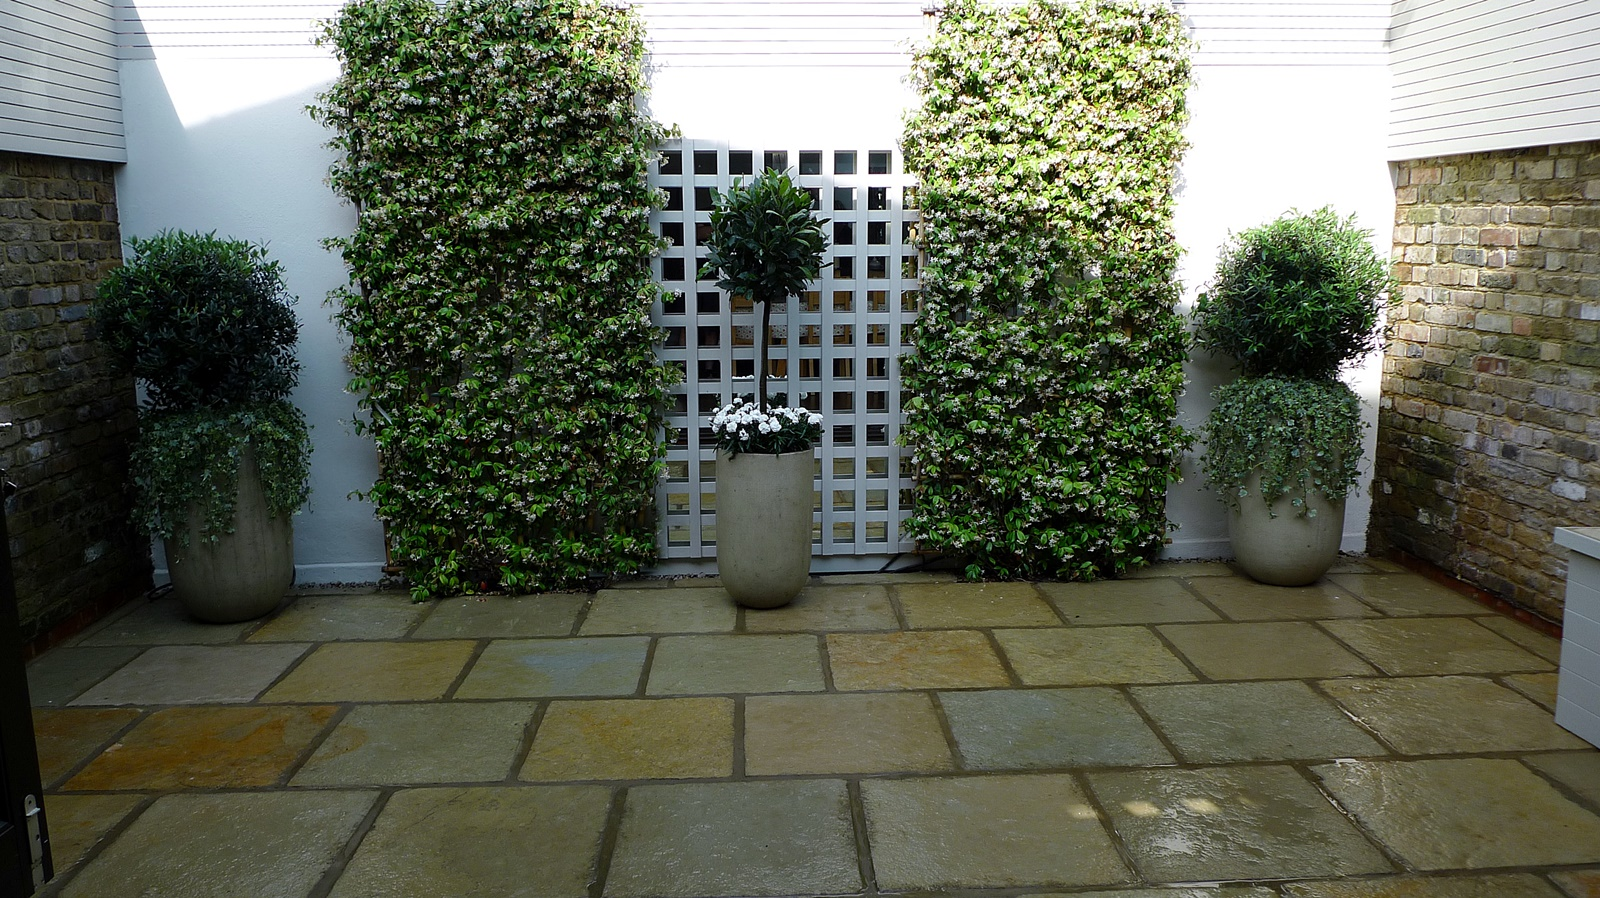 Courtyard minimalist contemporary garden design and designer docklands london